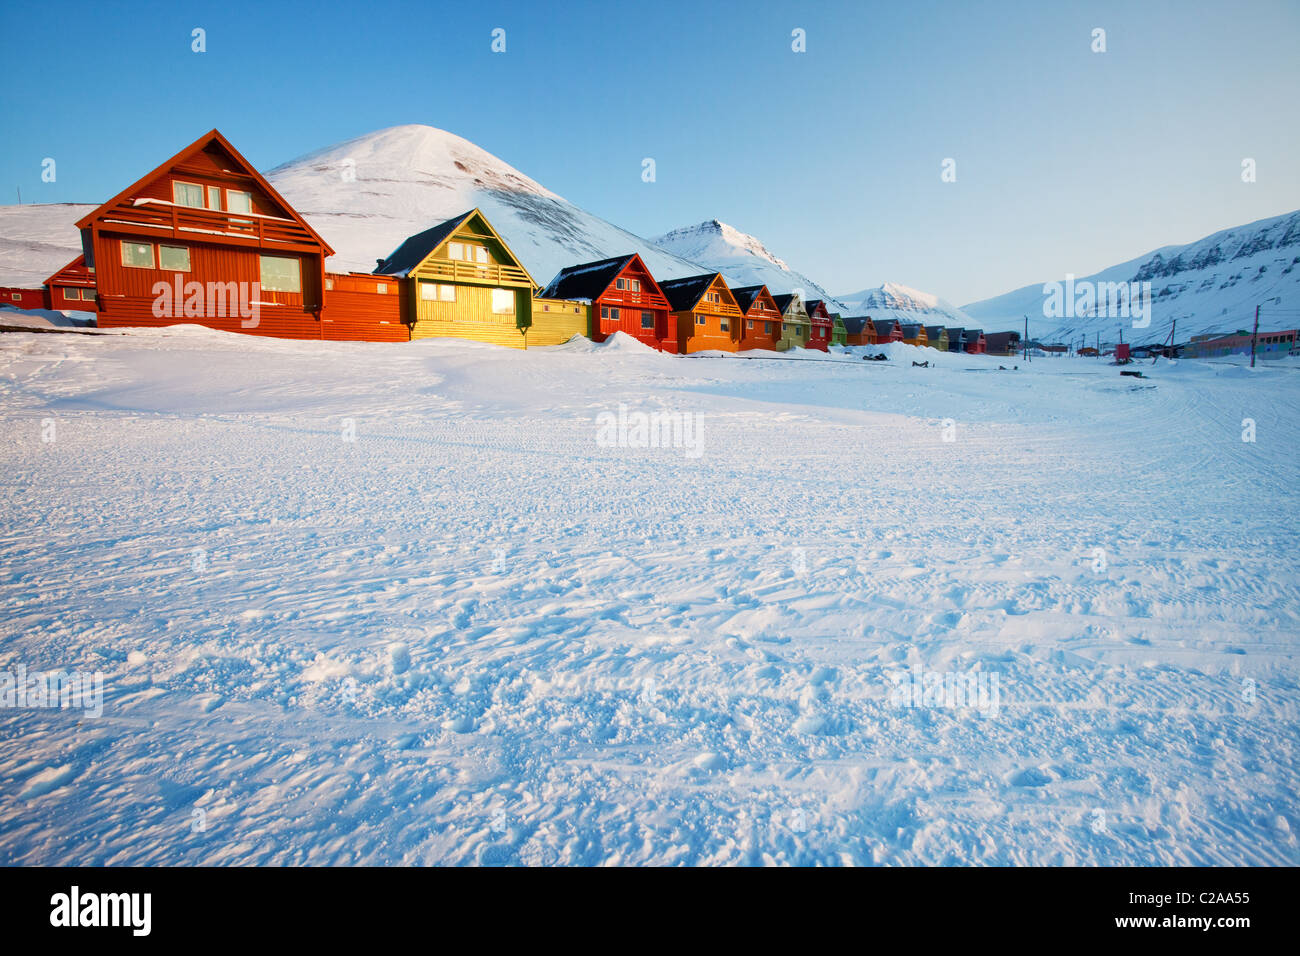 Sunset on Longyearbyen, Norway, the northern most settlement in the world. - Stock Image